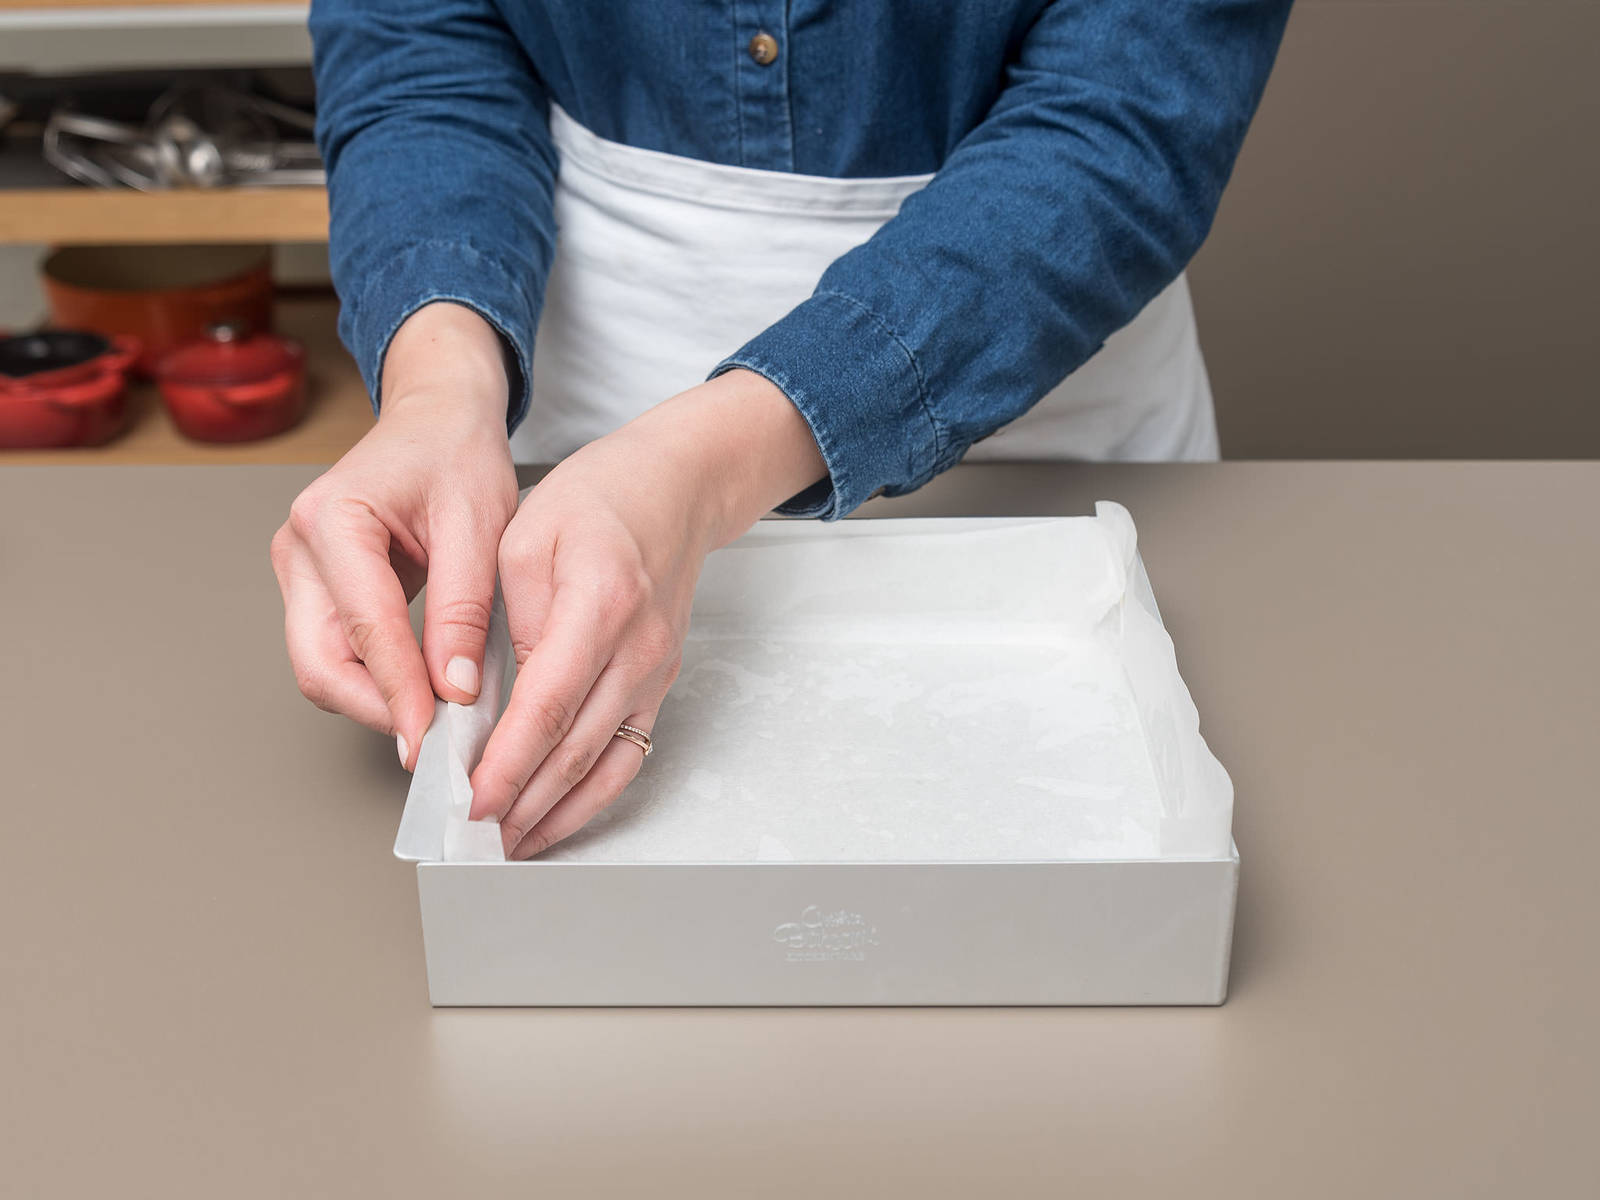 Preheat the oven to 180°C/350°F. Grease the baking pan and line with parchment paper.